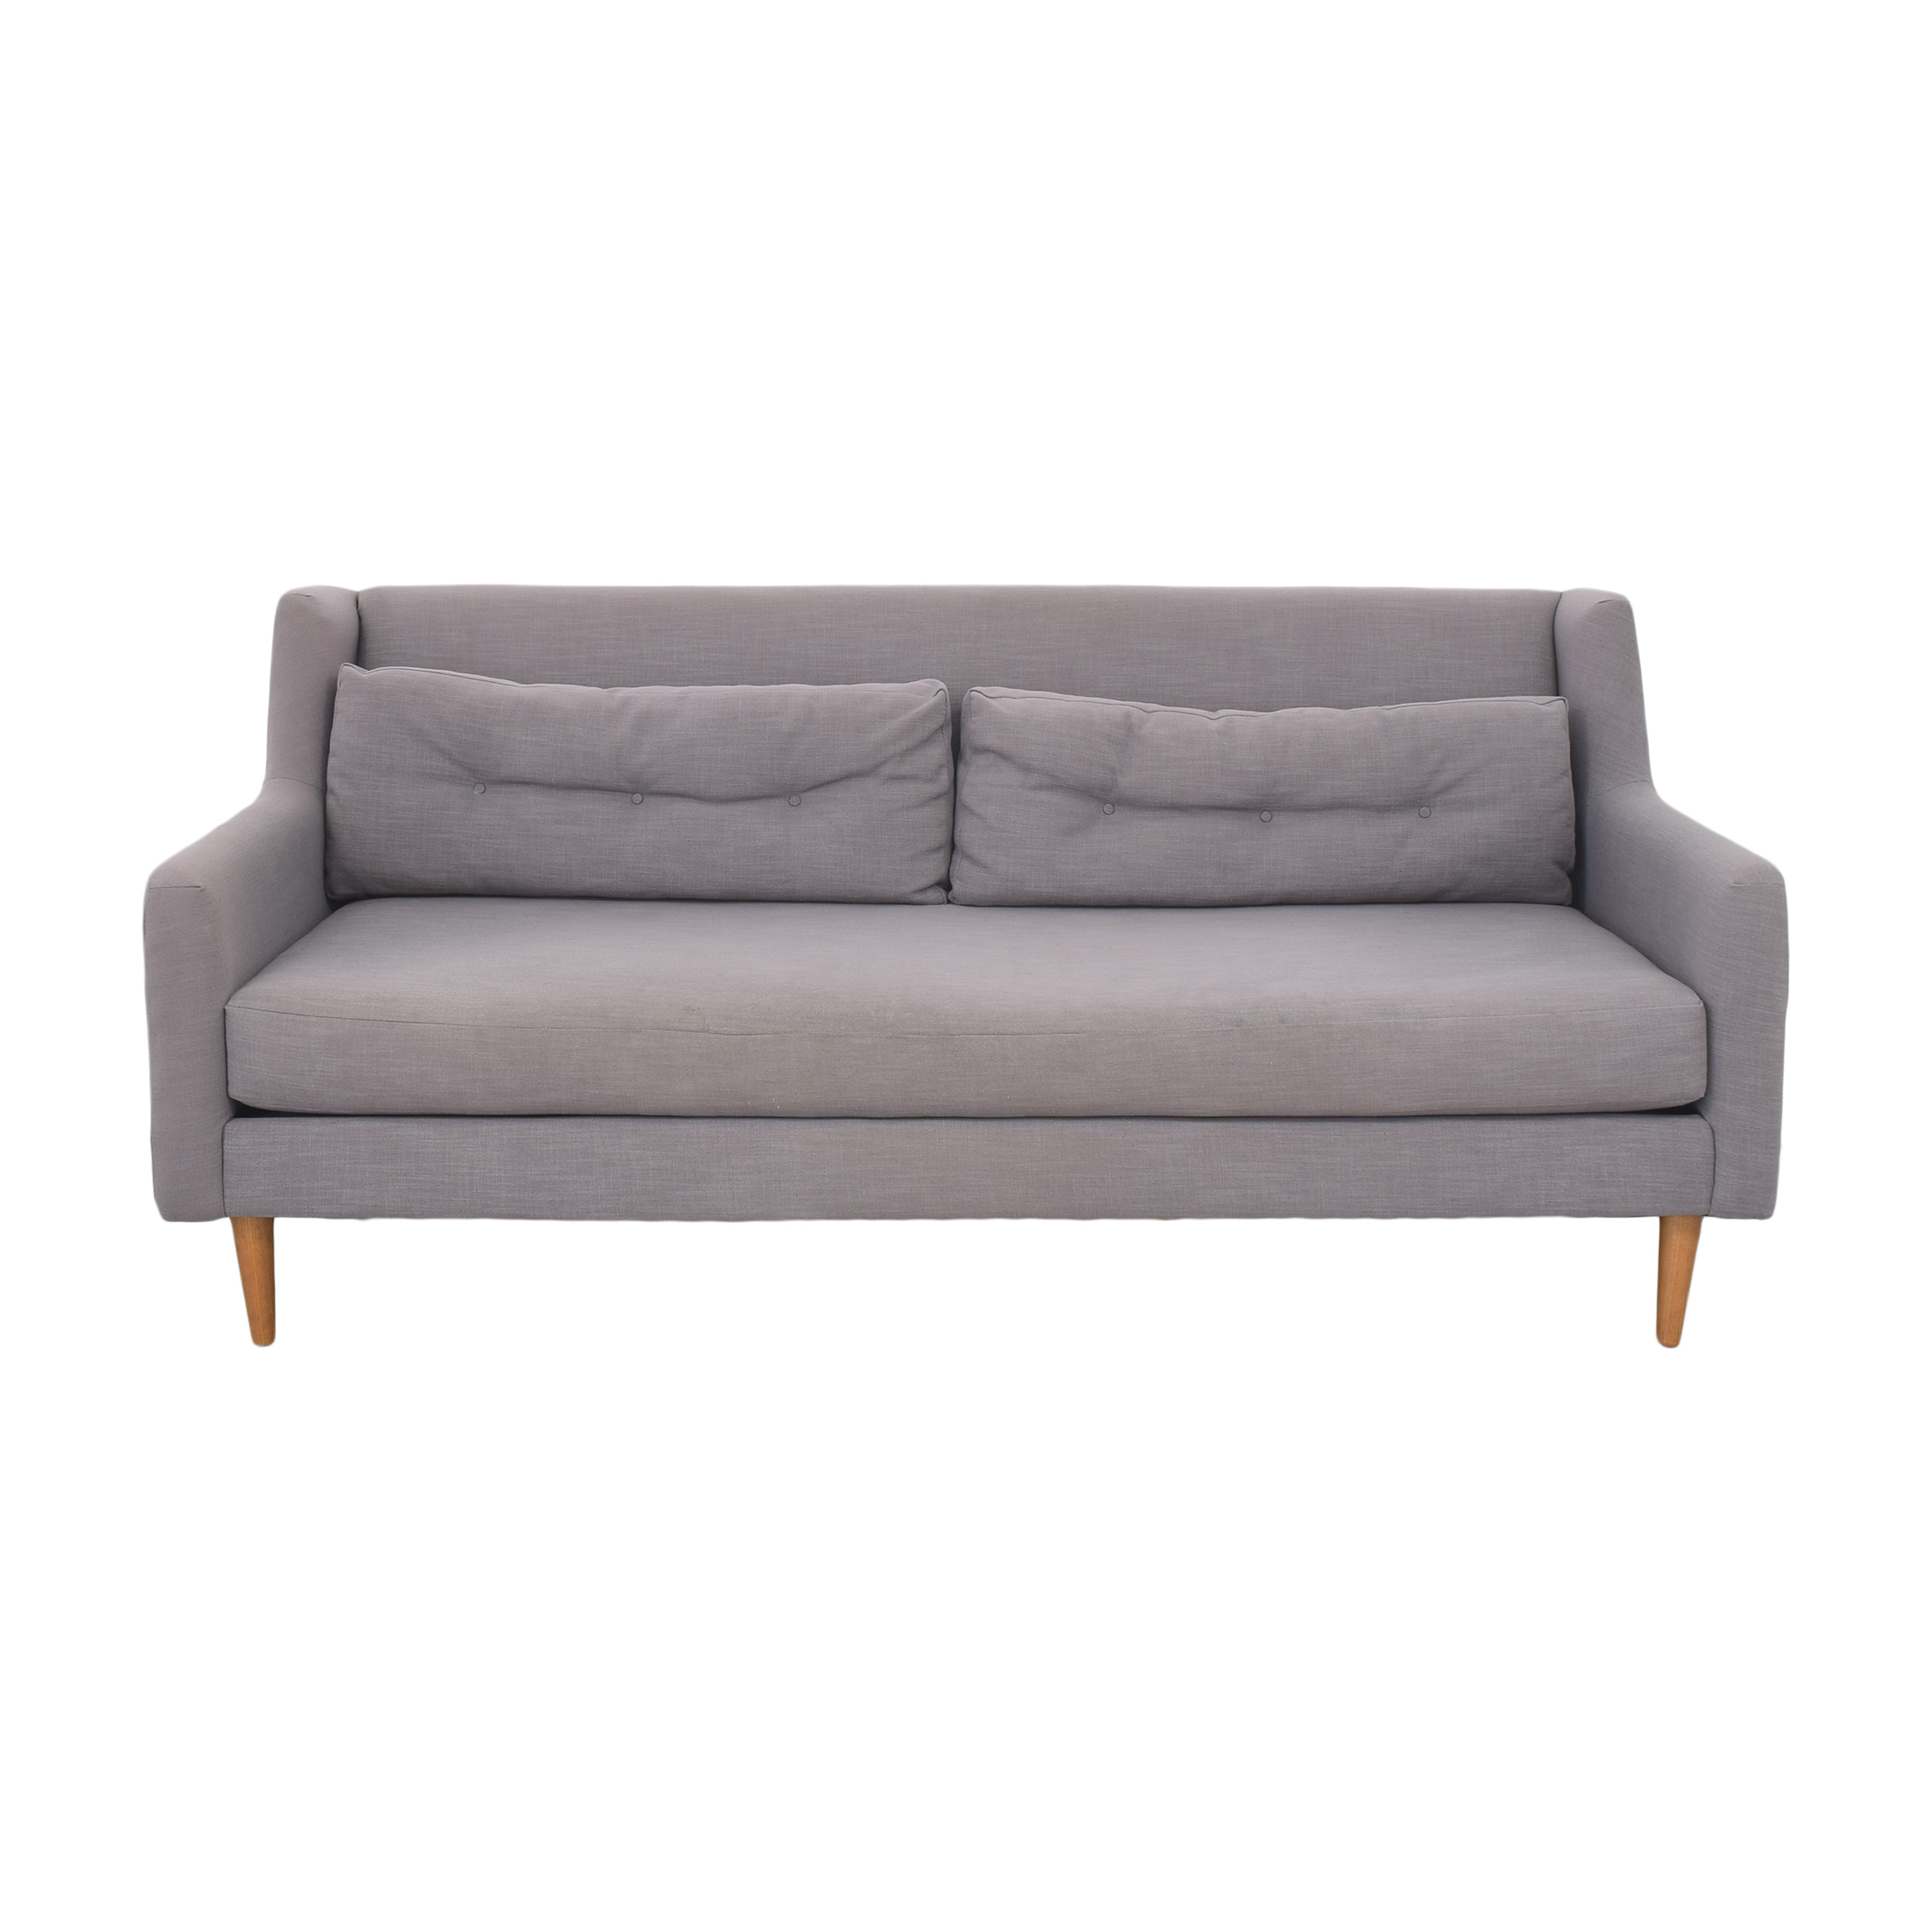 West Elm West Elm Crosby Bench Cushion Sofa price